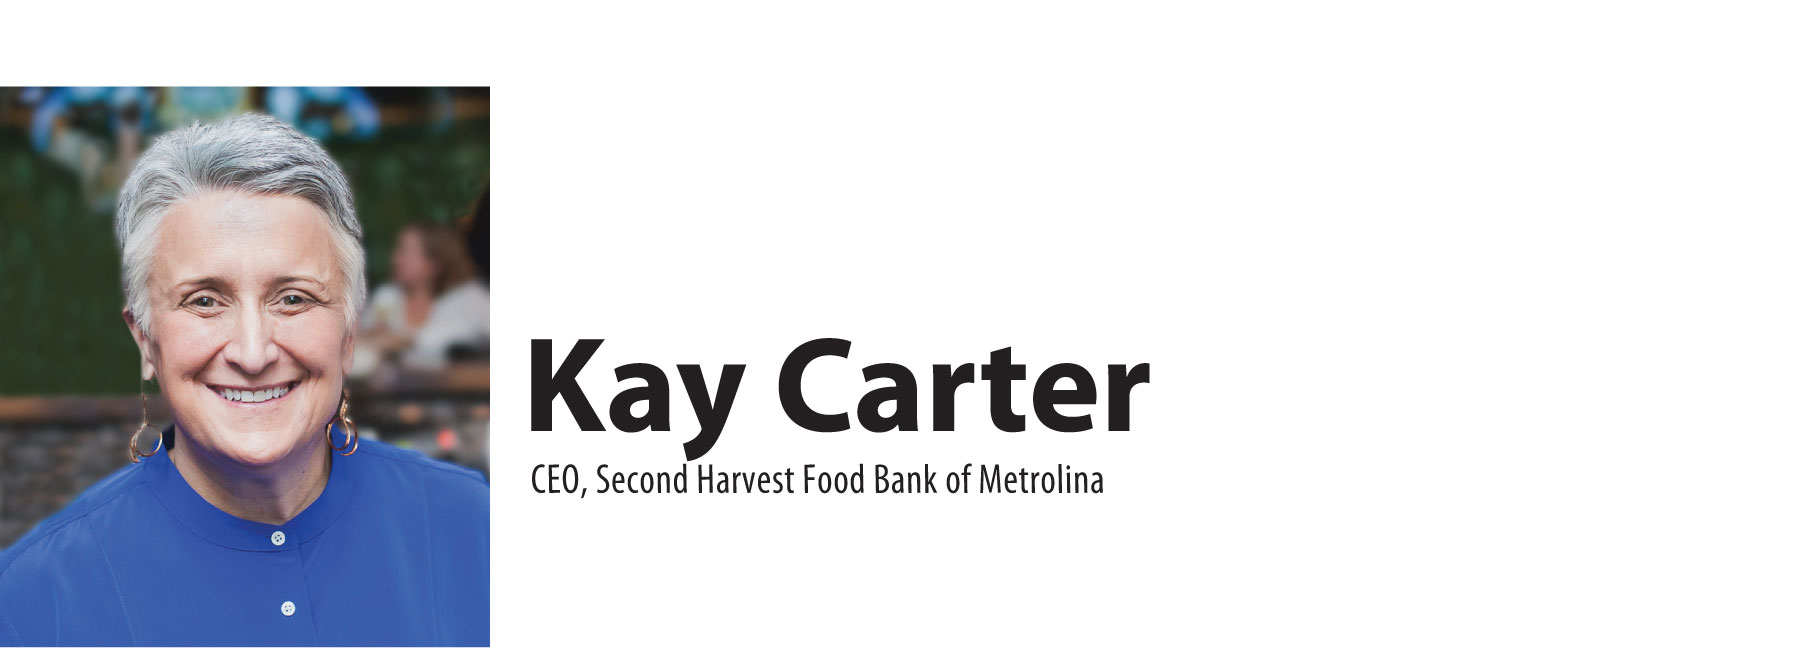 Kay Carter - CEO, Second Harvest Food Bank of Metrolina